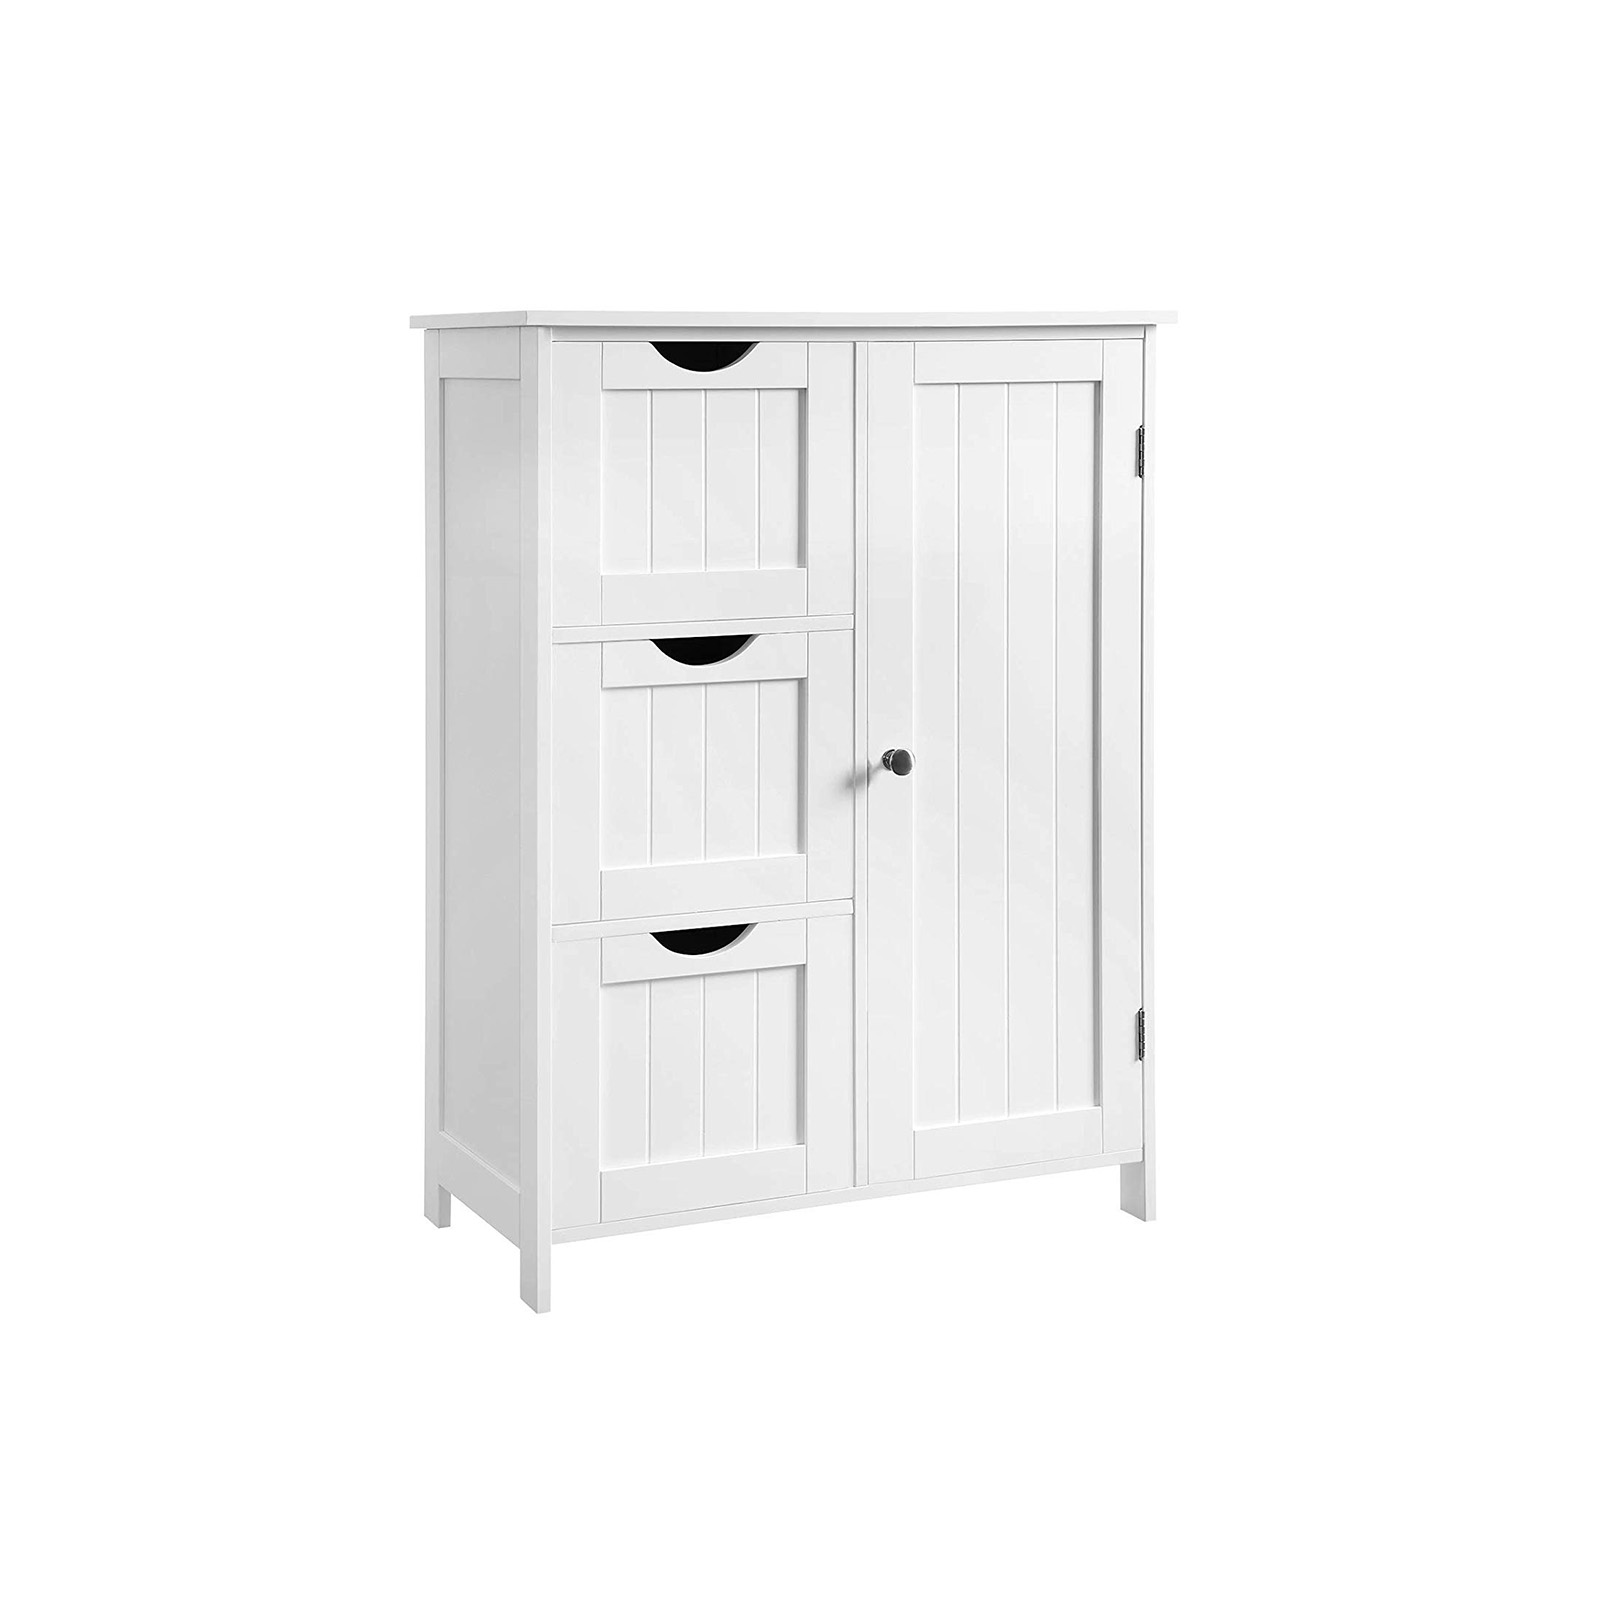 3 Drawers Bathroom Cabinet Cabinet Vasagle By Songmics